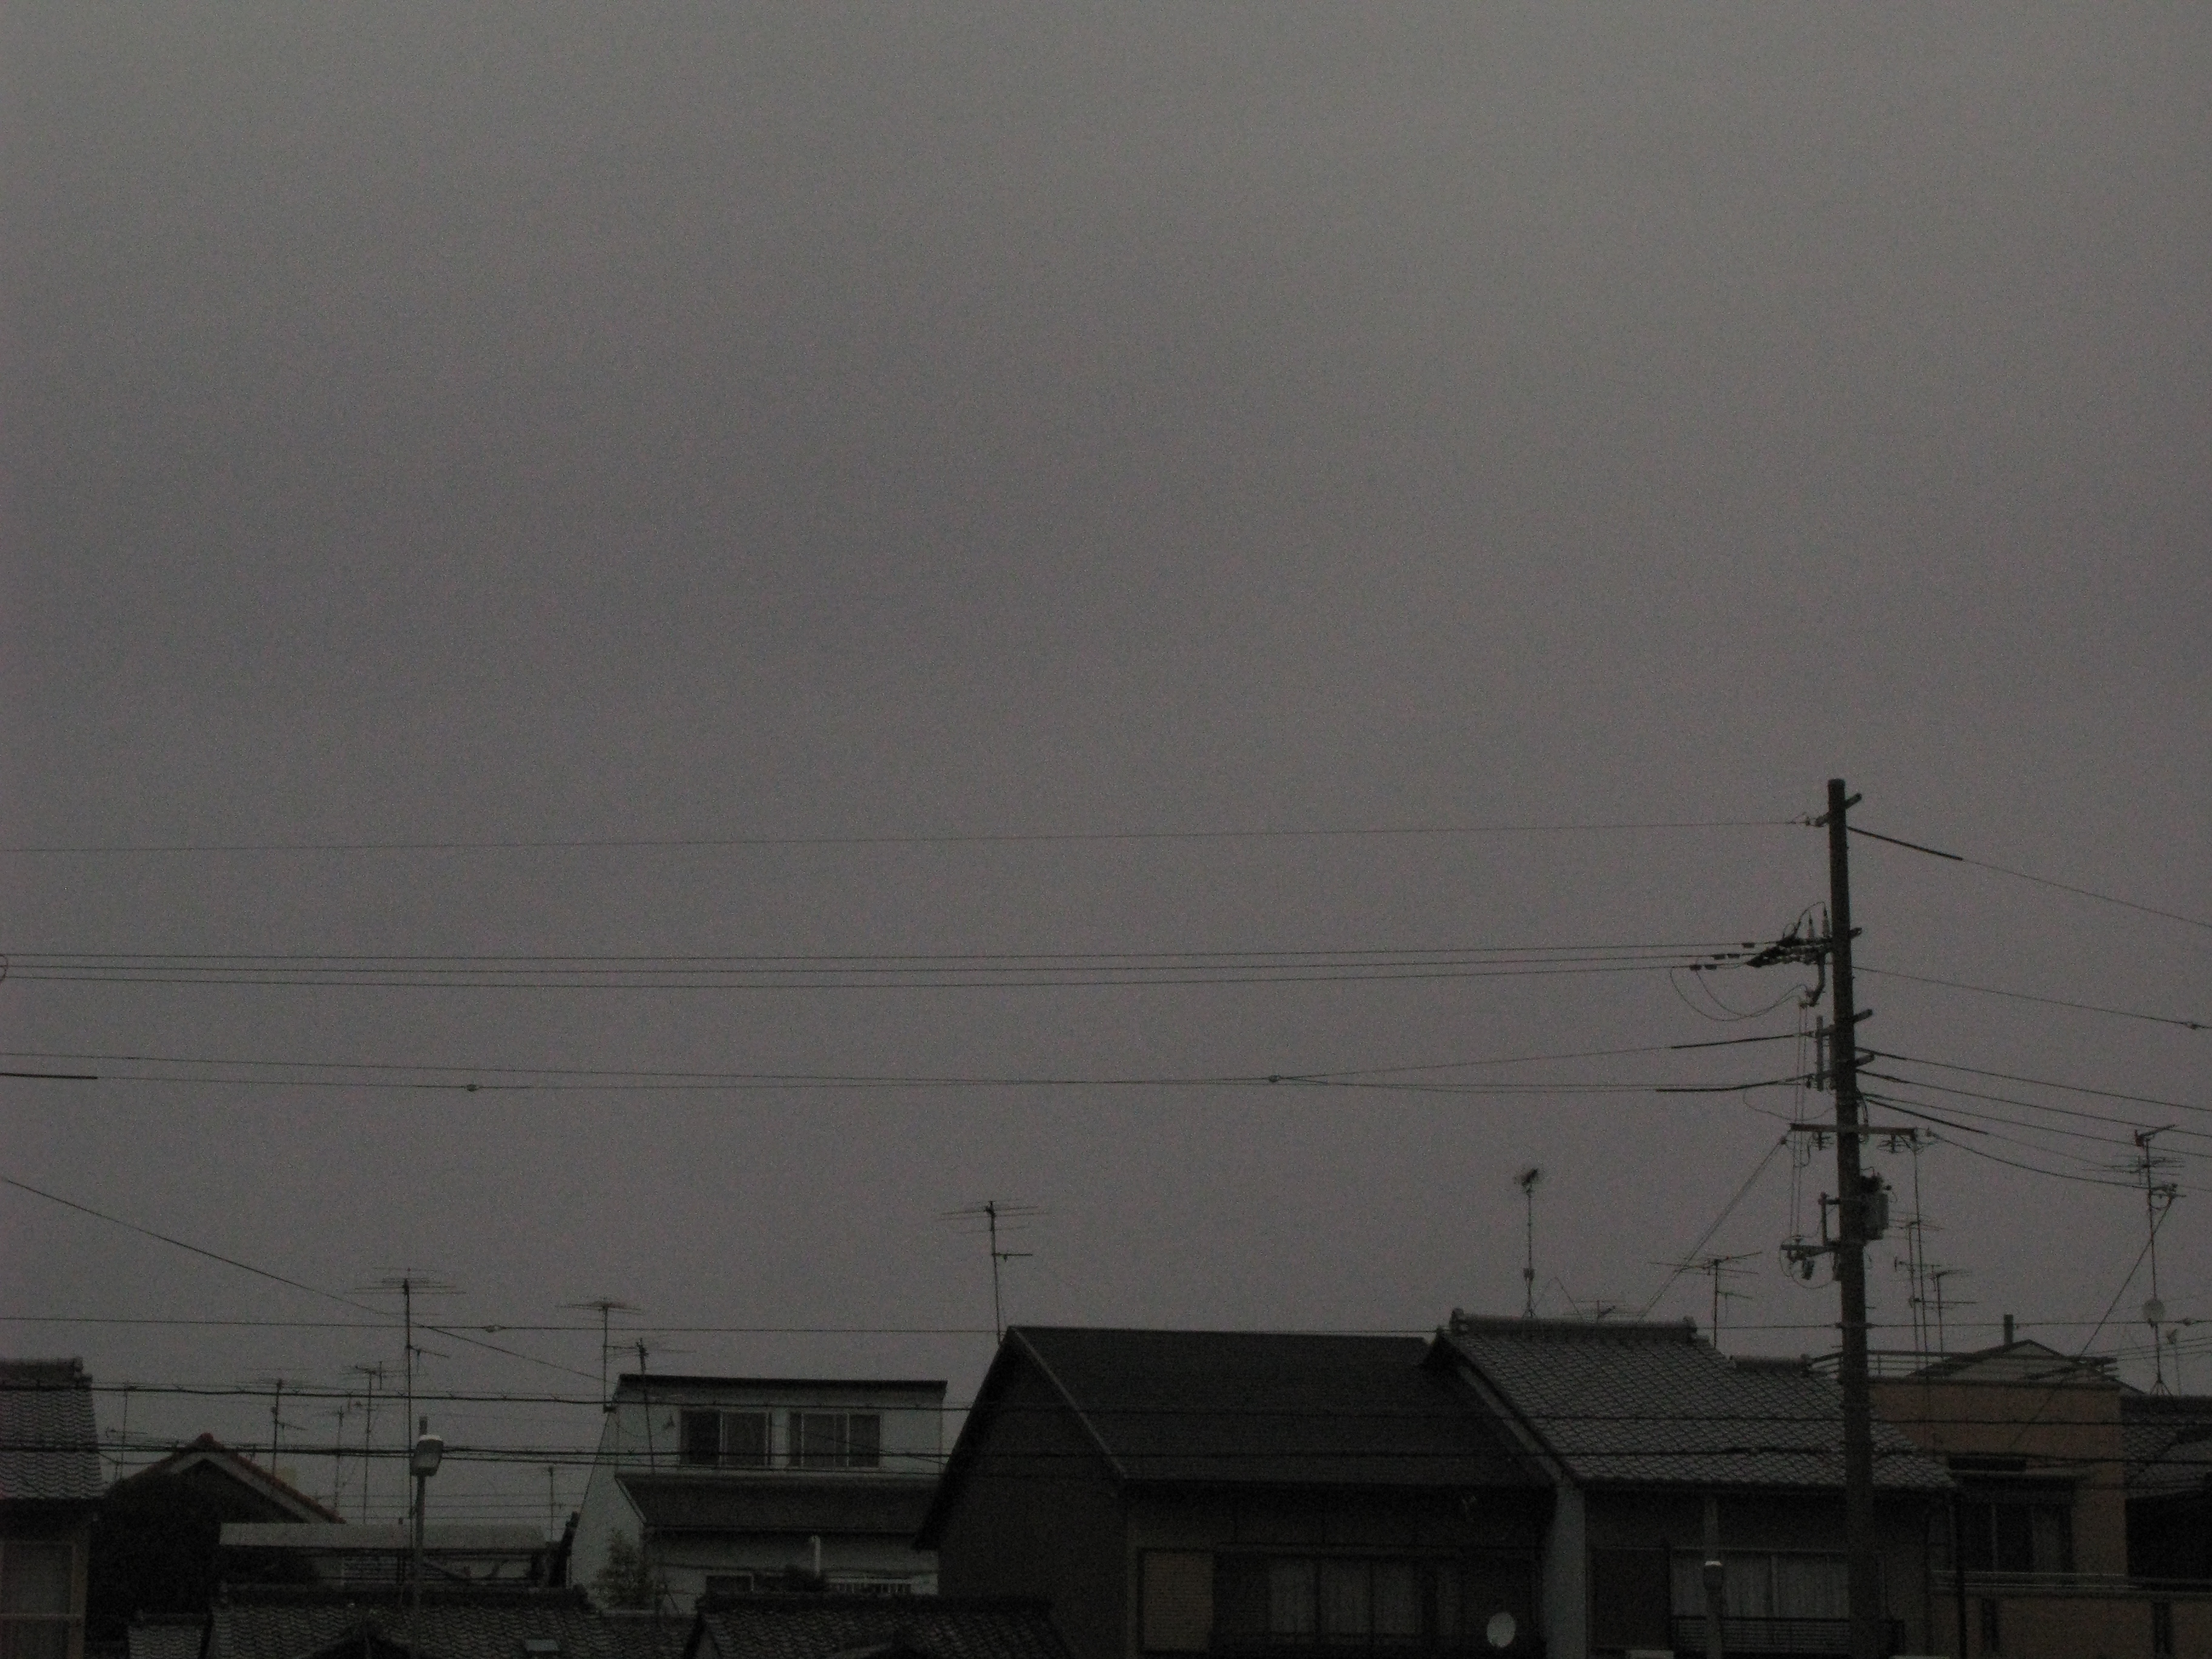 moody grey suburban skyline with roof tops and power lines